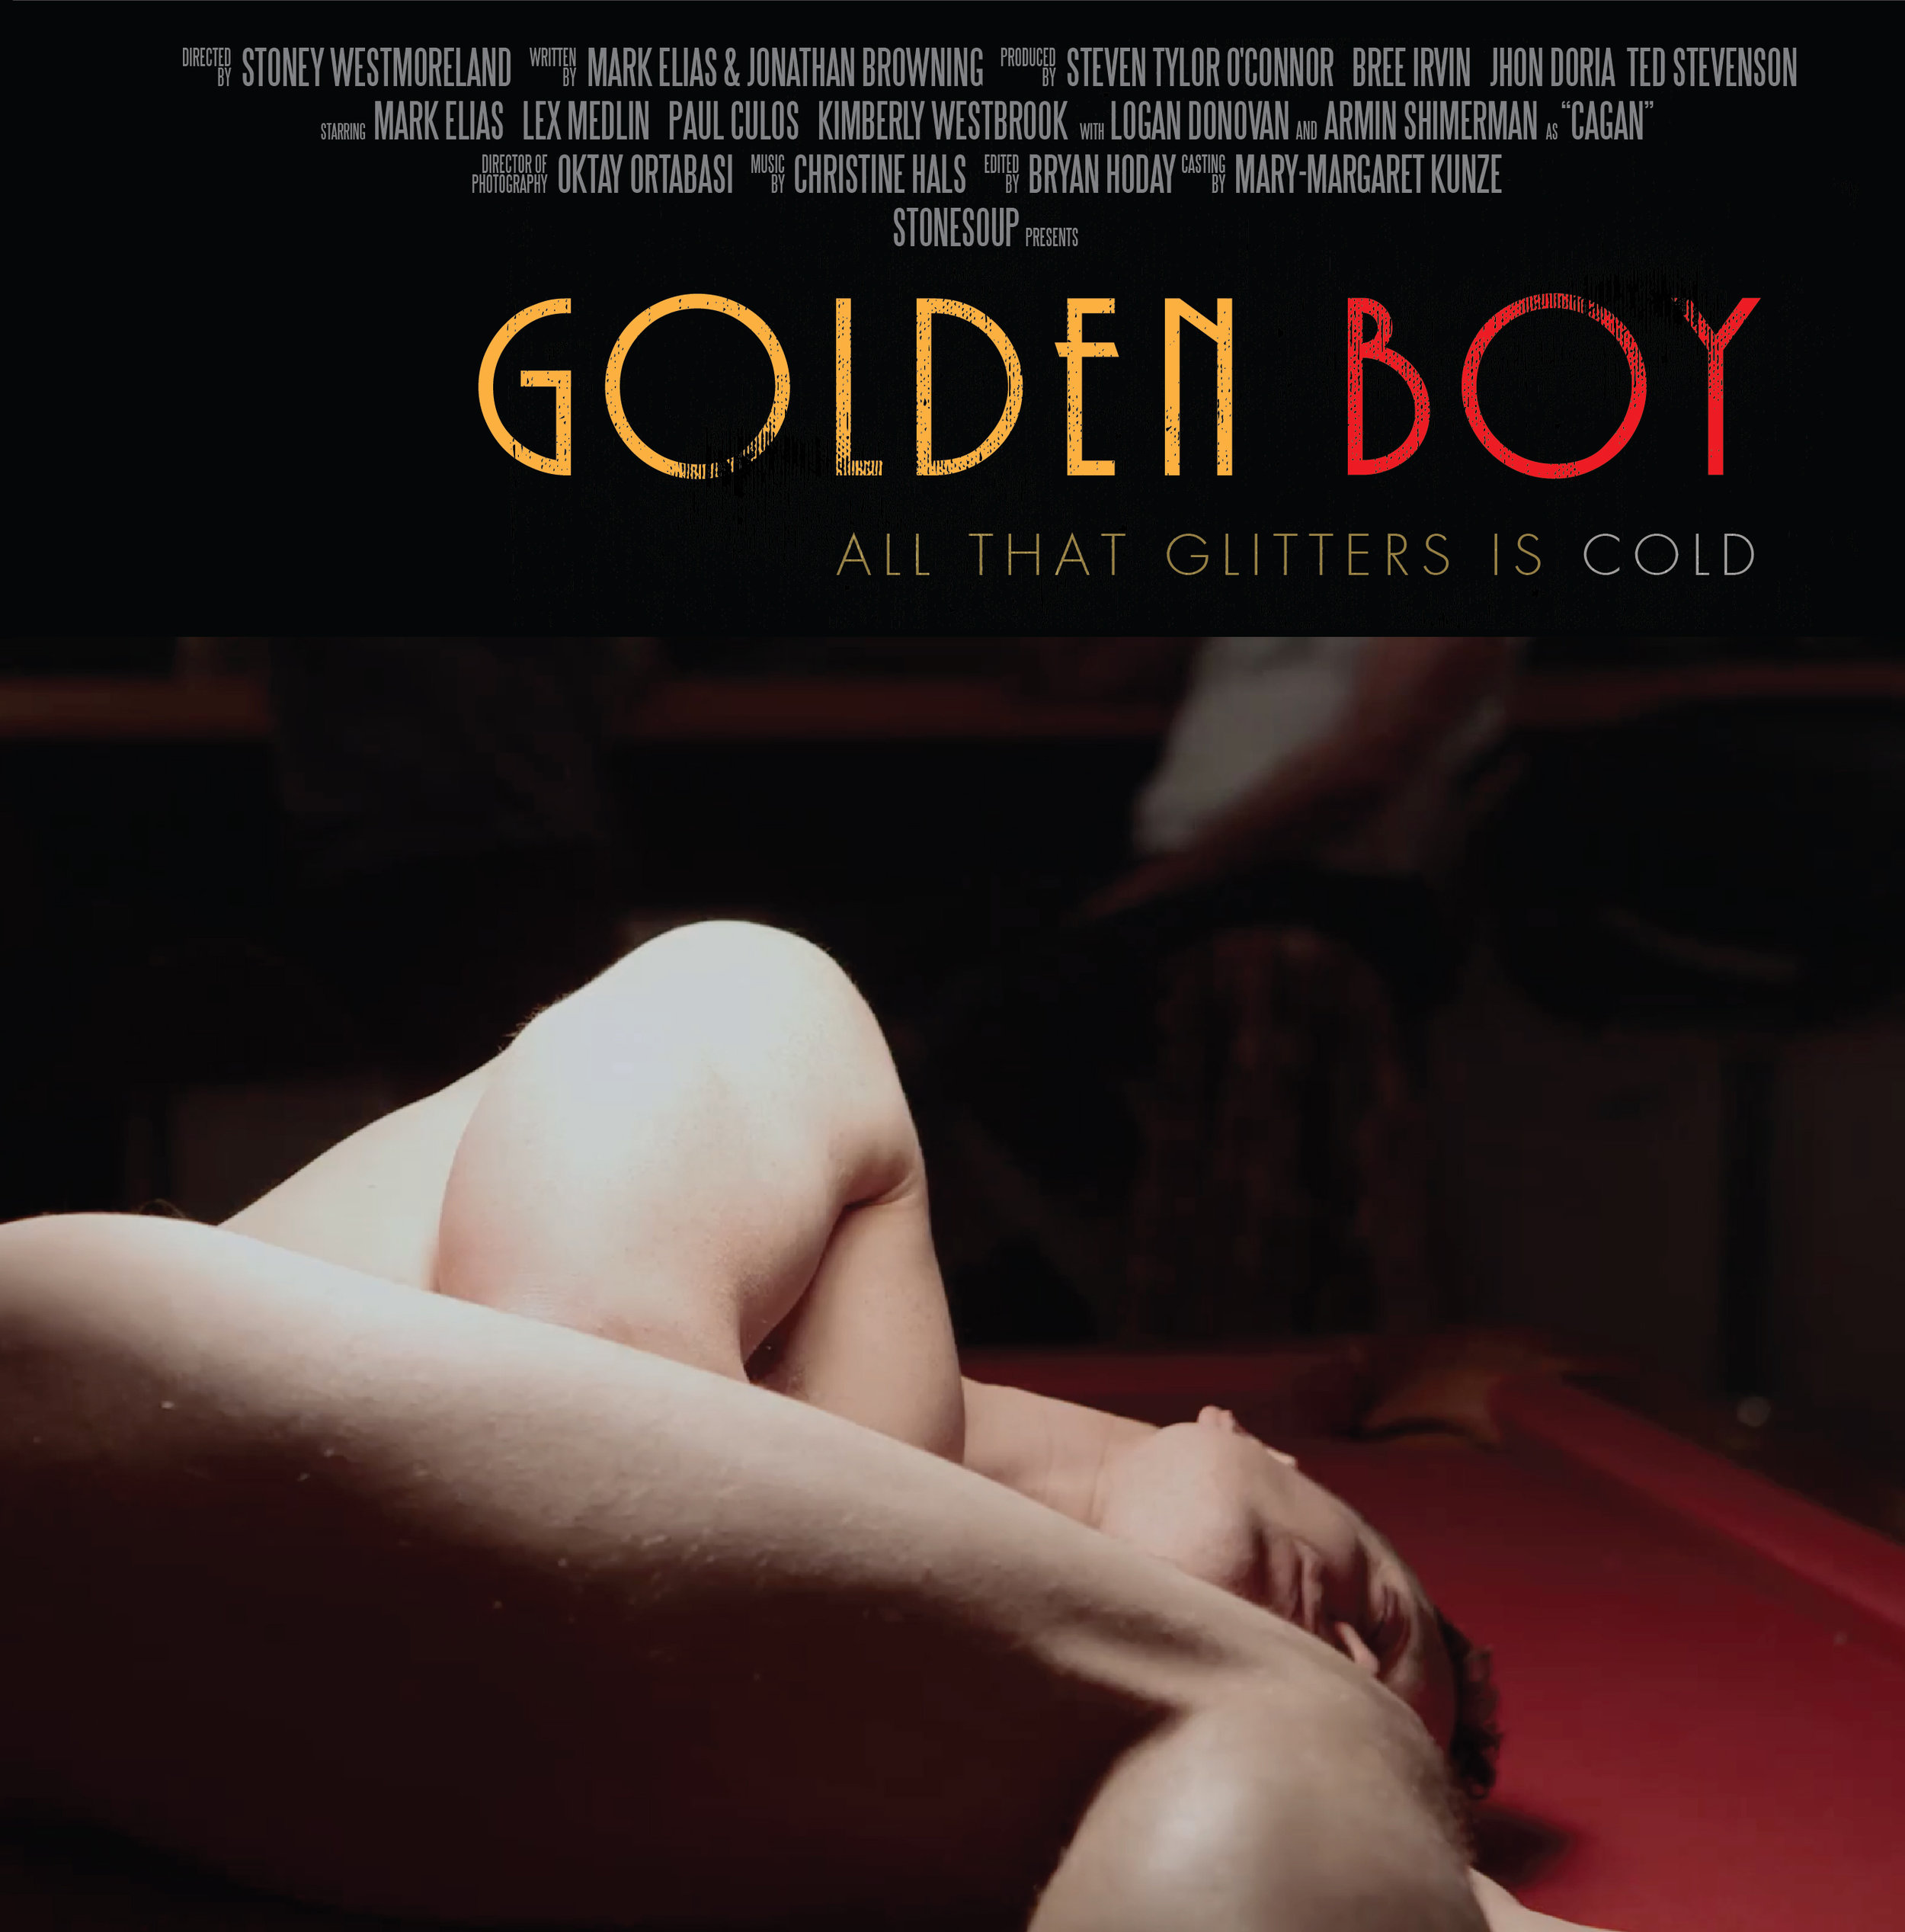 Golden Boy Instagram Poster.jpg